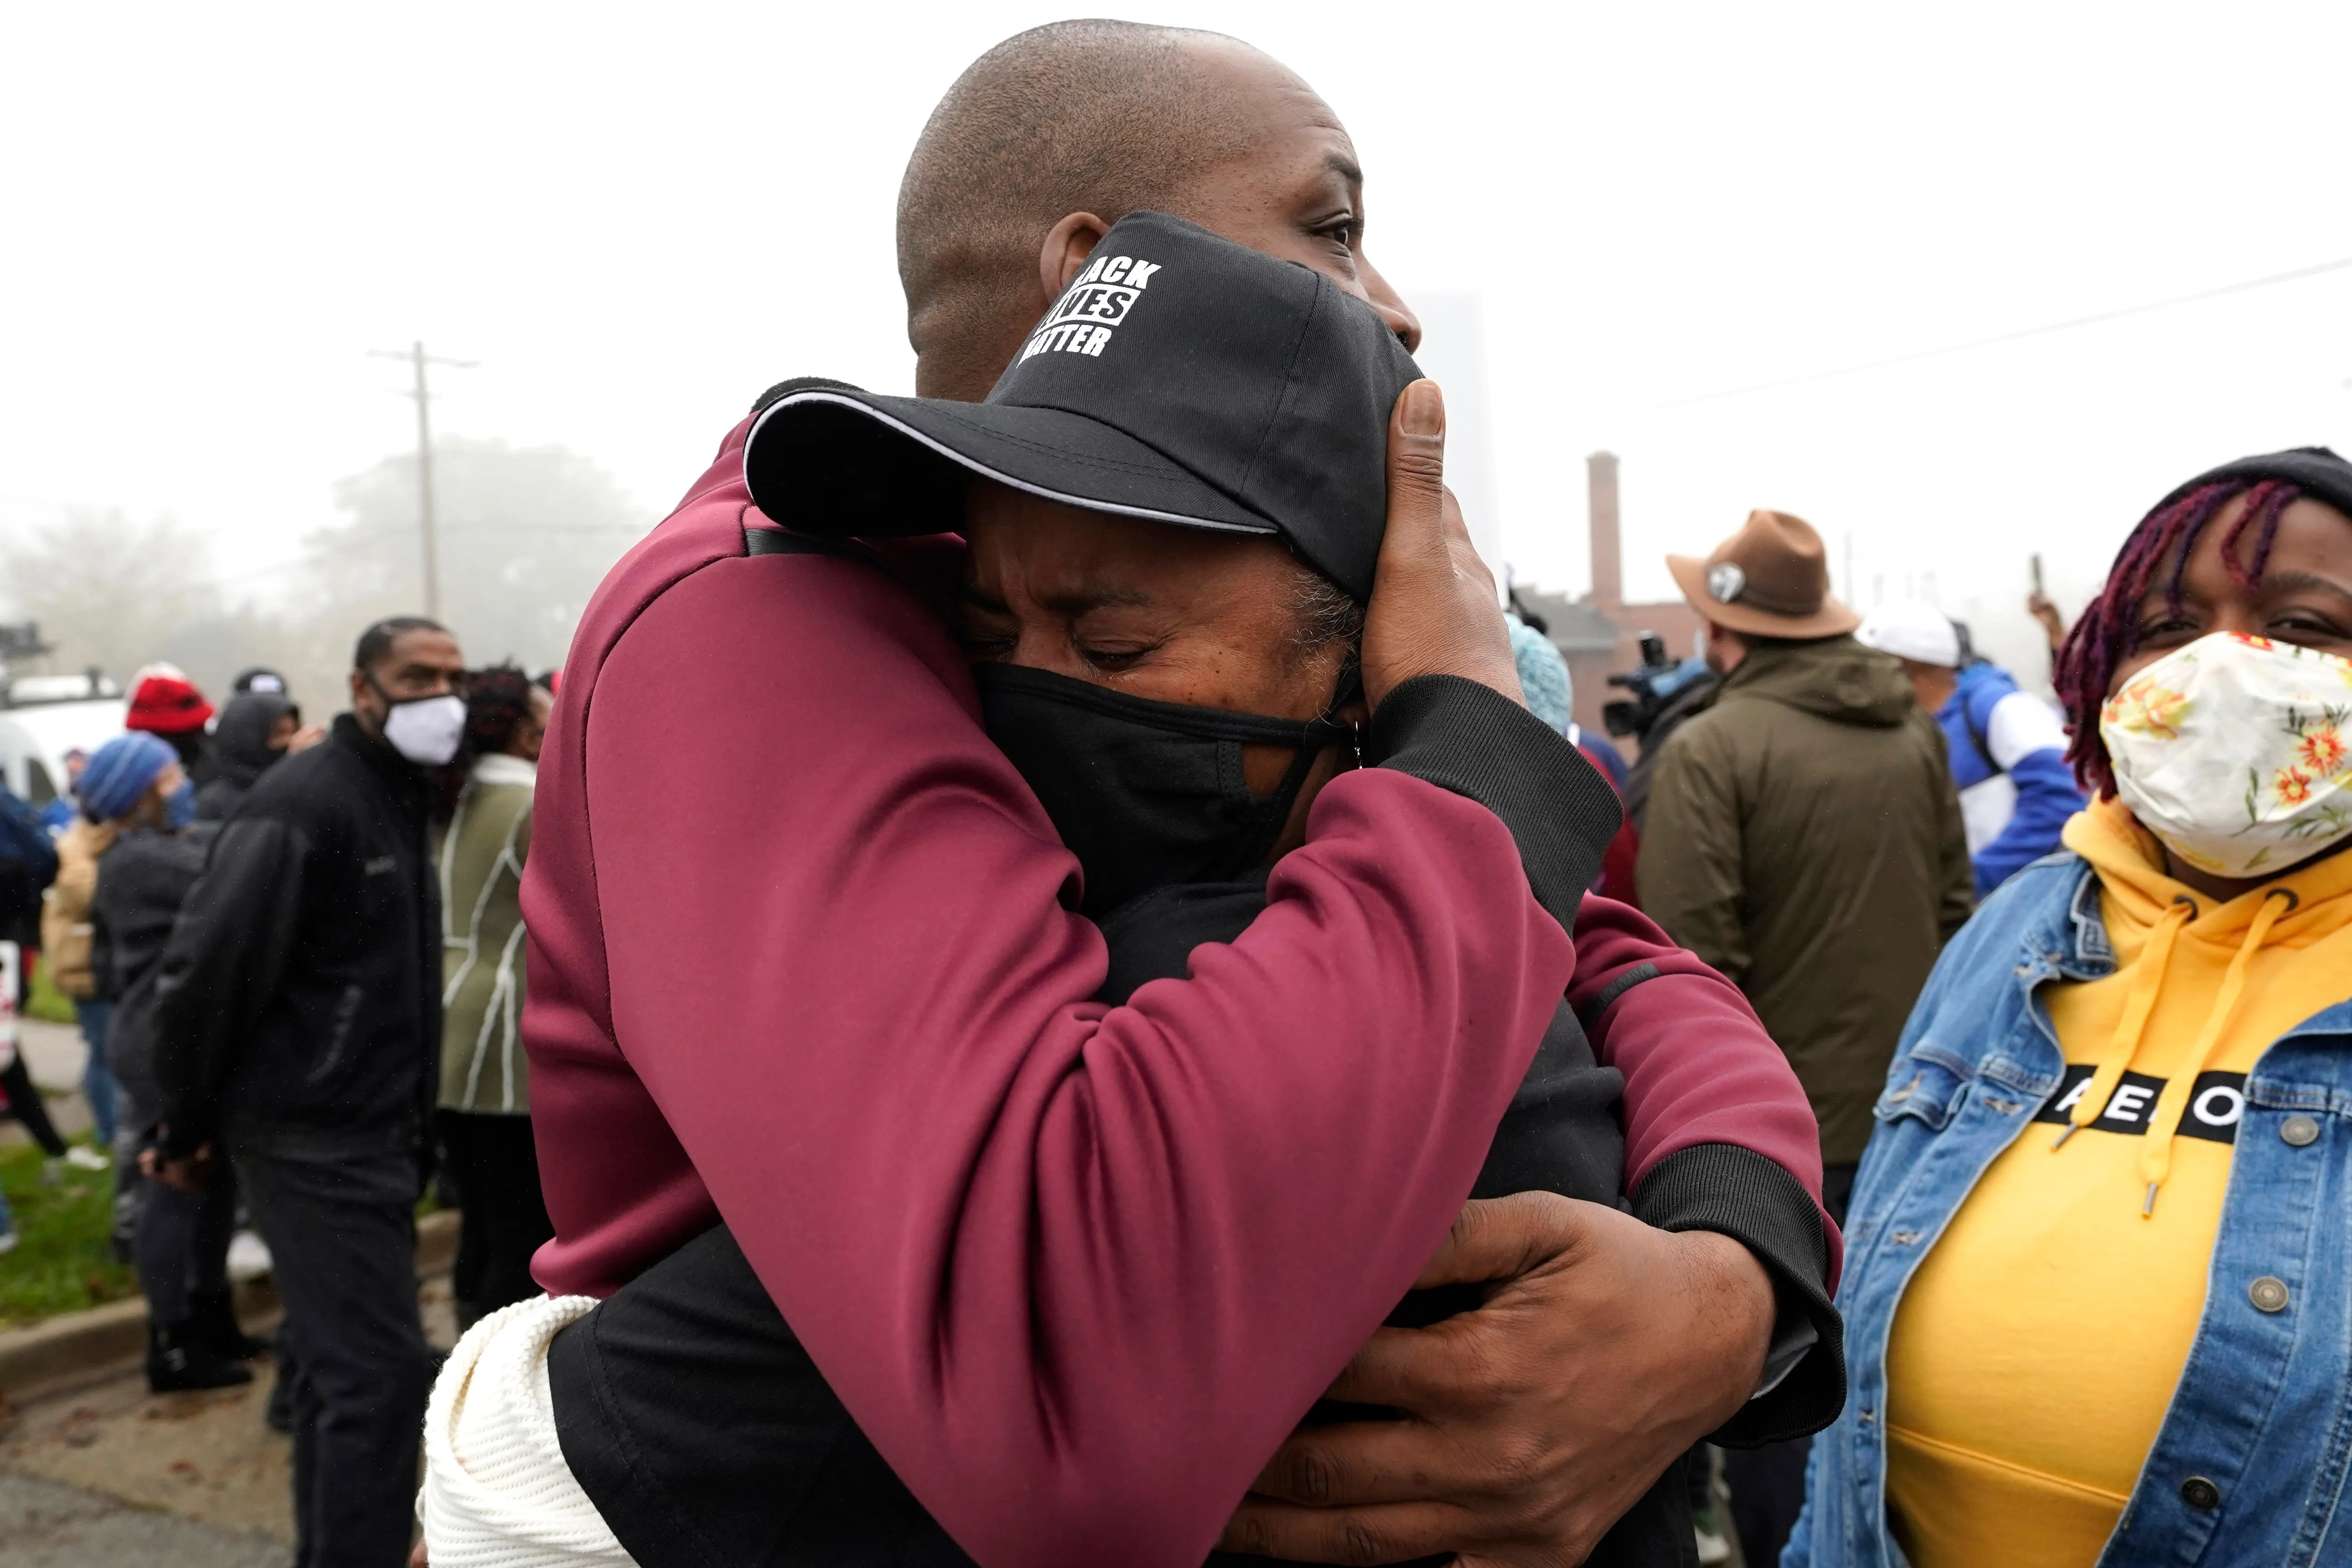 Marcellis Stinnette's grandmother Sherrellis Stinnette, right, cries as she hugs Rayon Edwards during a protest rally for Marcellis Stinnette who was killed by Waukegan Police on Tuesday in Waukegan, Ill. On Thursday 22 October 2020. Stinnette, 19, was killed and his girlfriend and the mother of his child, Tafara Williams, was injured when a Waukegan police officer opened fire on Tuesday evening after police said the vehicle of Williams had started driving towards the officer following a traffic stop.